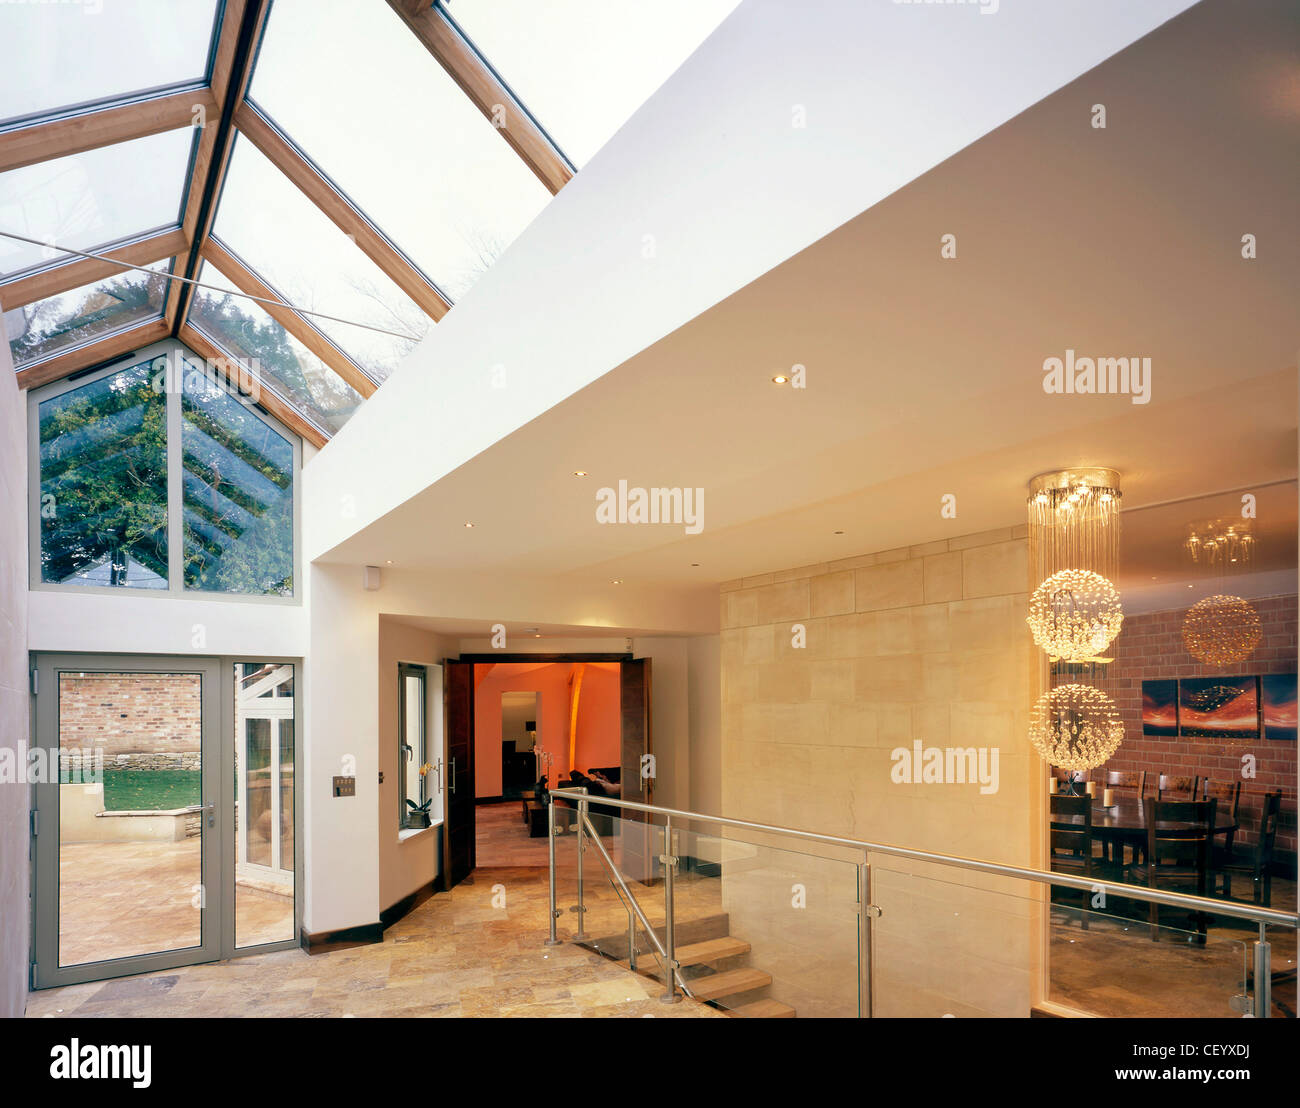 Glass Roof House the interiof decagon house in oxford, uk, showing living room